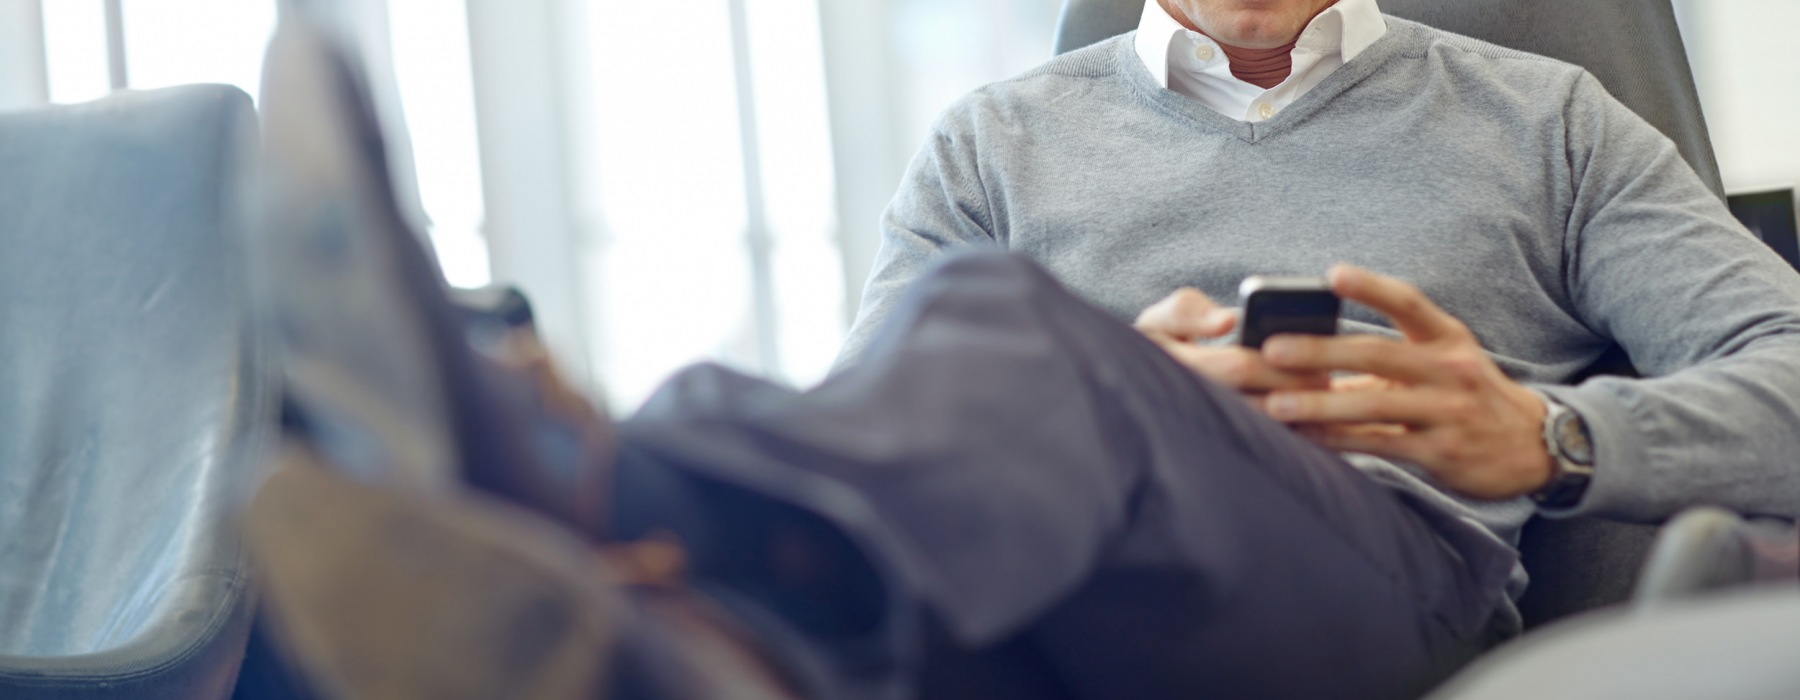 lifestyle image of a person relaxed in a chair while looking at their mobile device